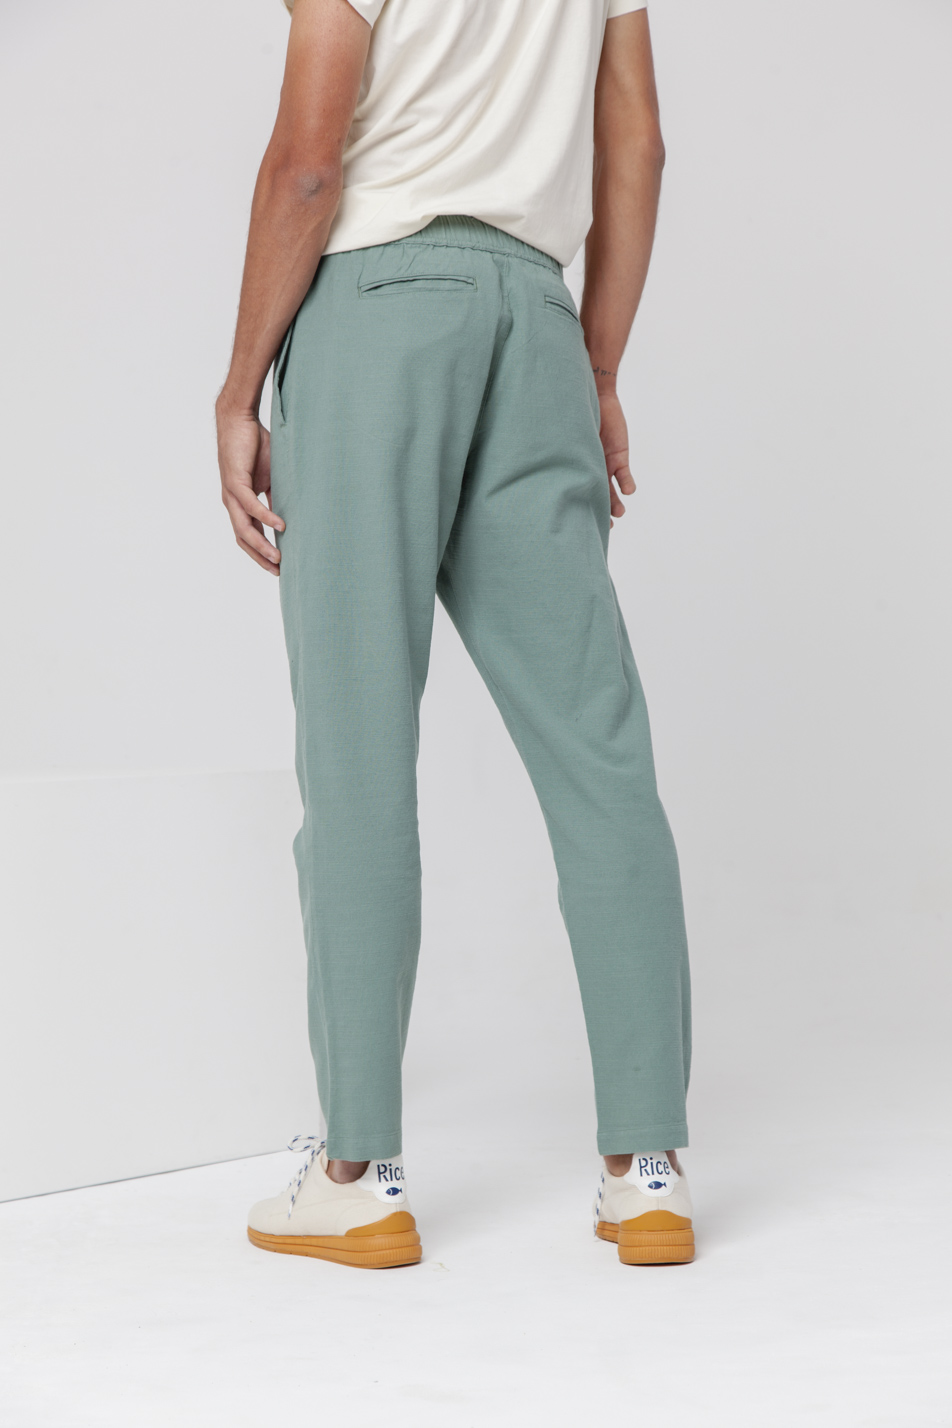 magasin en ligne def67 cf728 Pantalon coton bio THINKING MU Travel vert